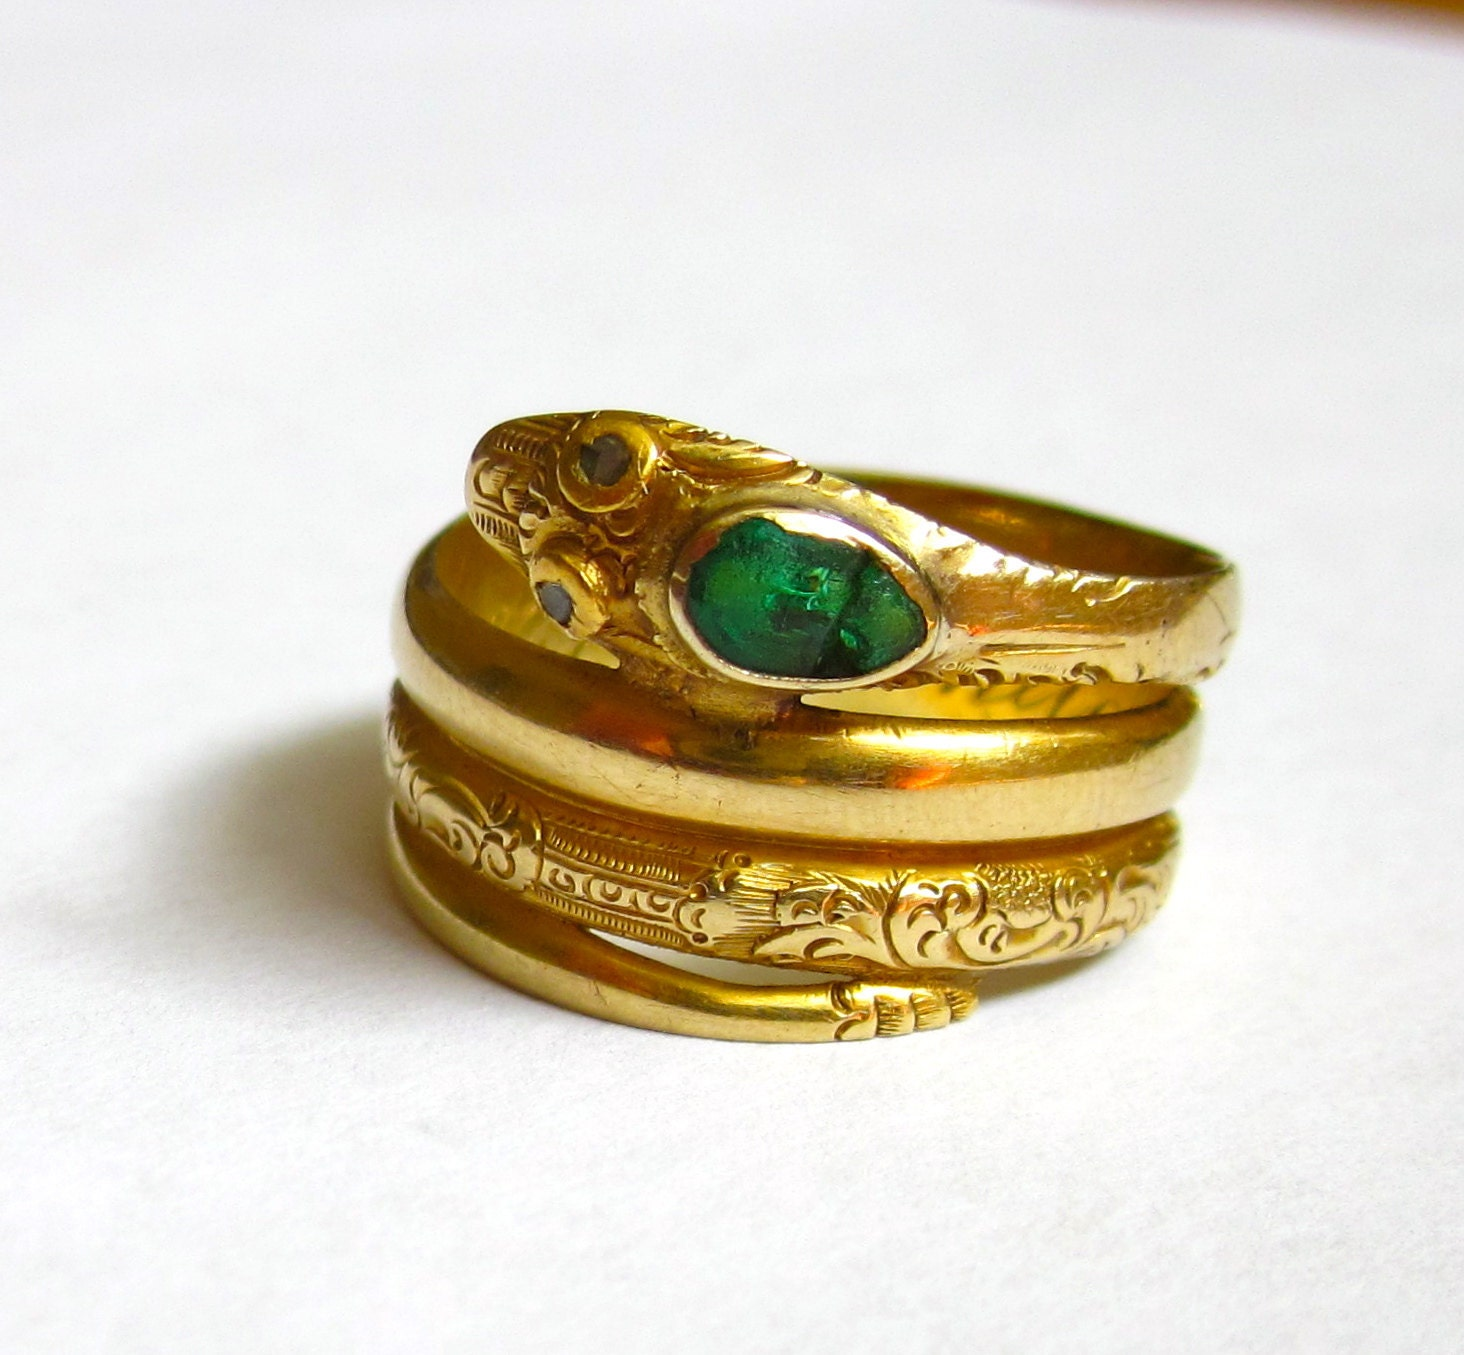 Antique Dated 1850 Victorian Snake Emerald Head And Diamond. 3mm Silver Wedding Rings. 19th Century Engagement Rings. 3mm Engagement Rings. Vampire Rings. Nepali Rings. December Birthstone Rings. Hexagon Shaped Engagement Rings. Crown Band Wedding Rings